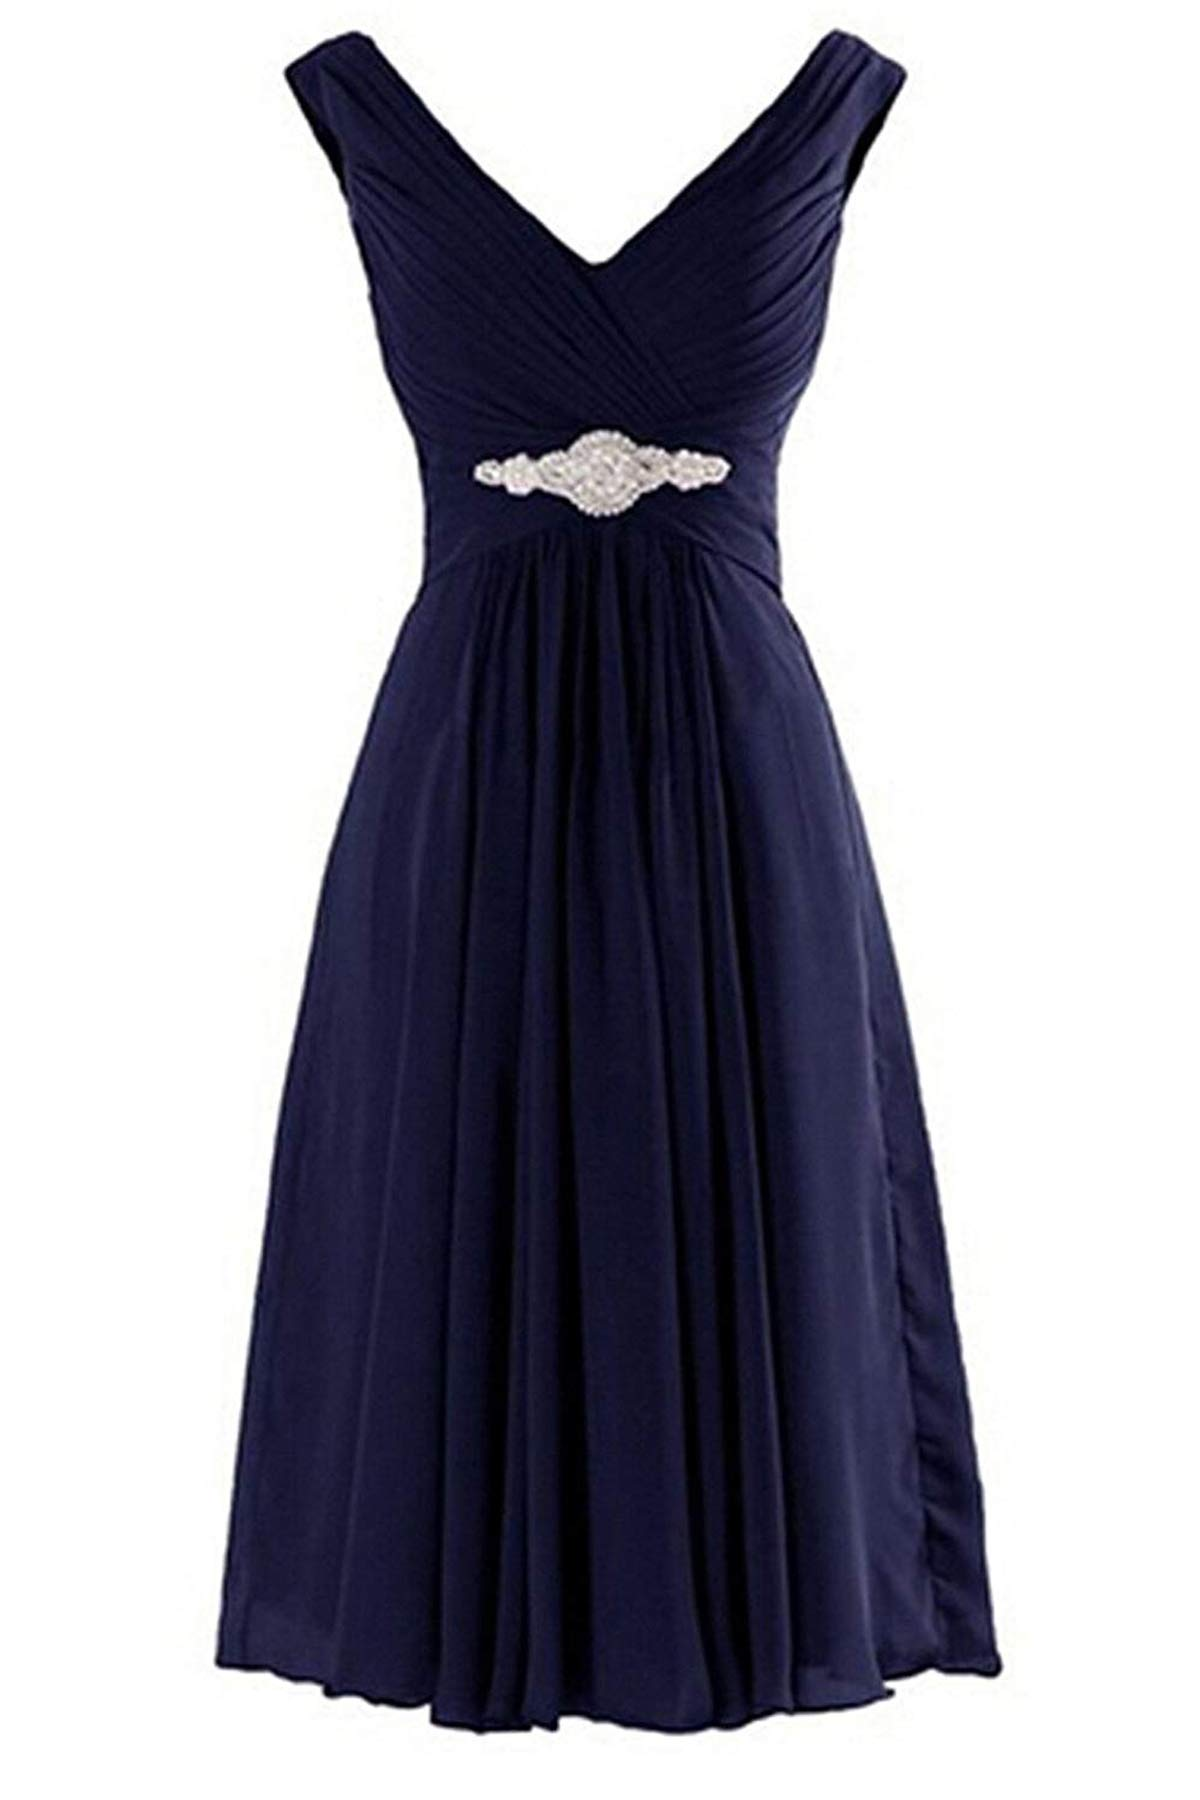 V Neck Bridesmaid Dress Short Mother Of The Bride Dress Formal Navy Blue 16w